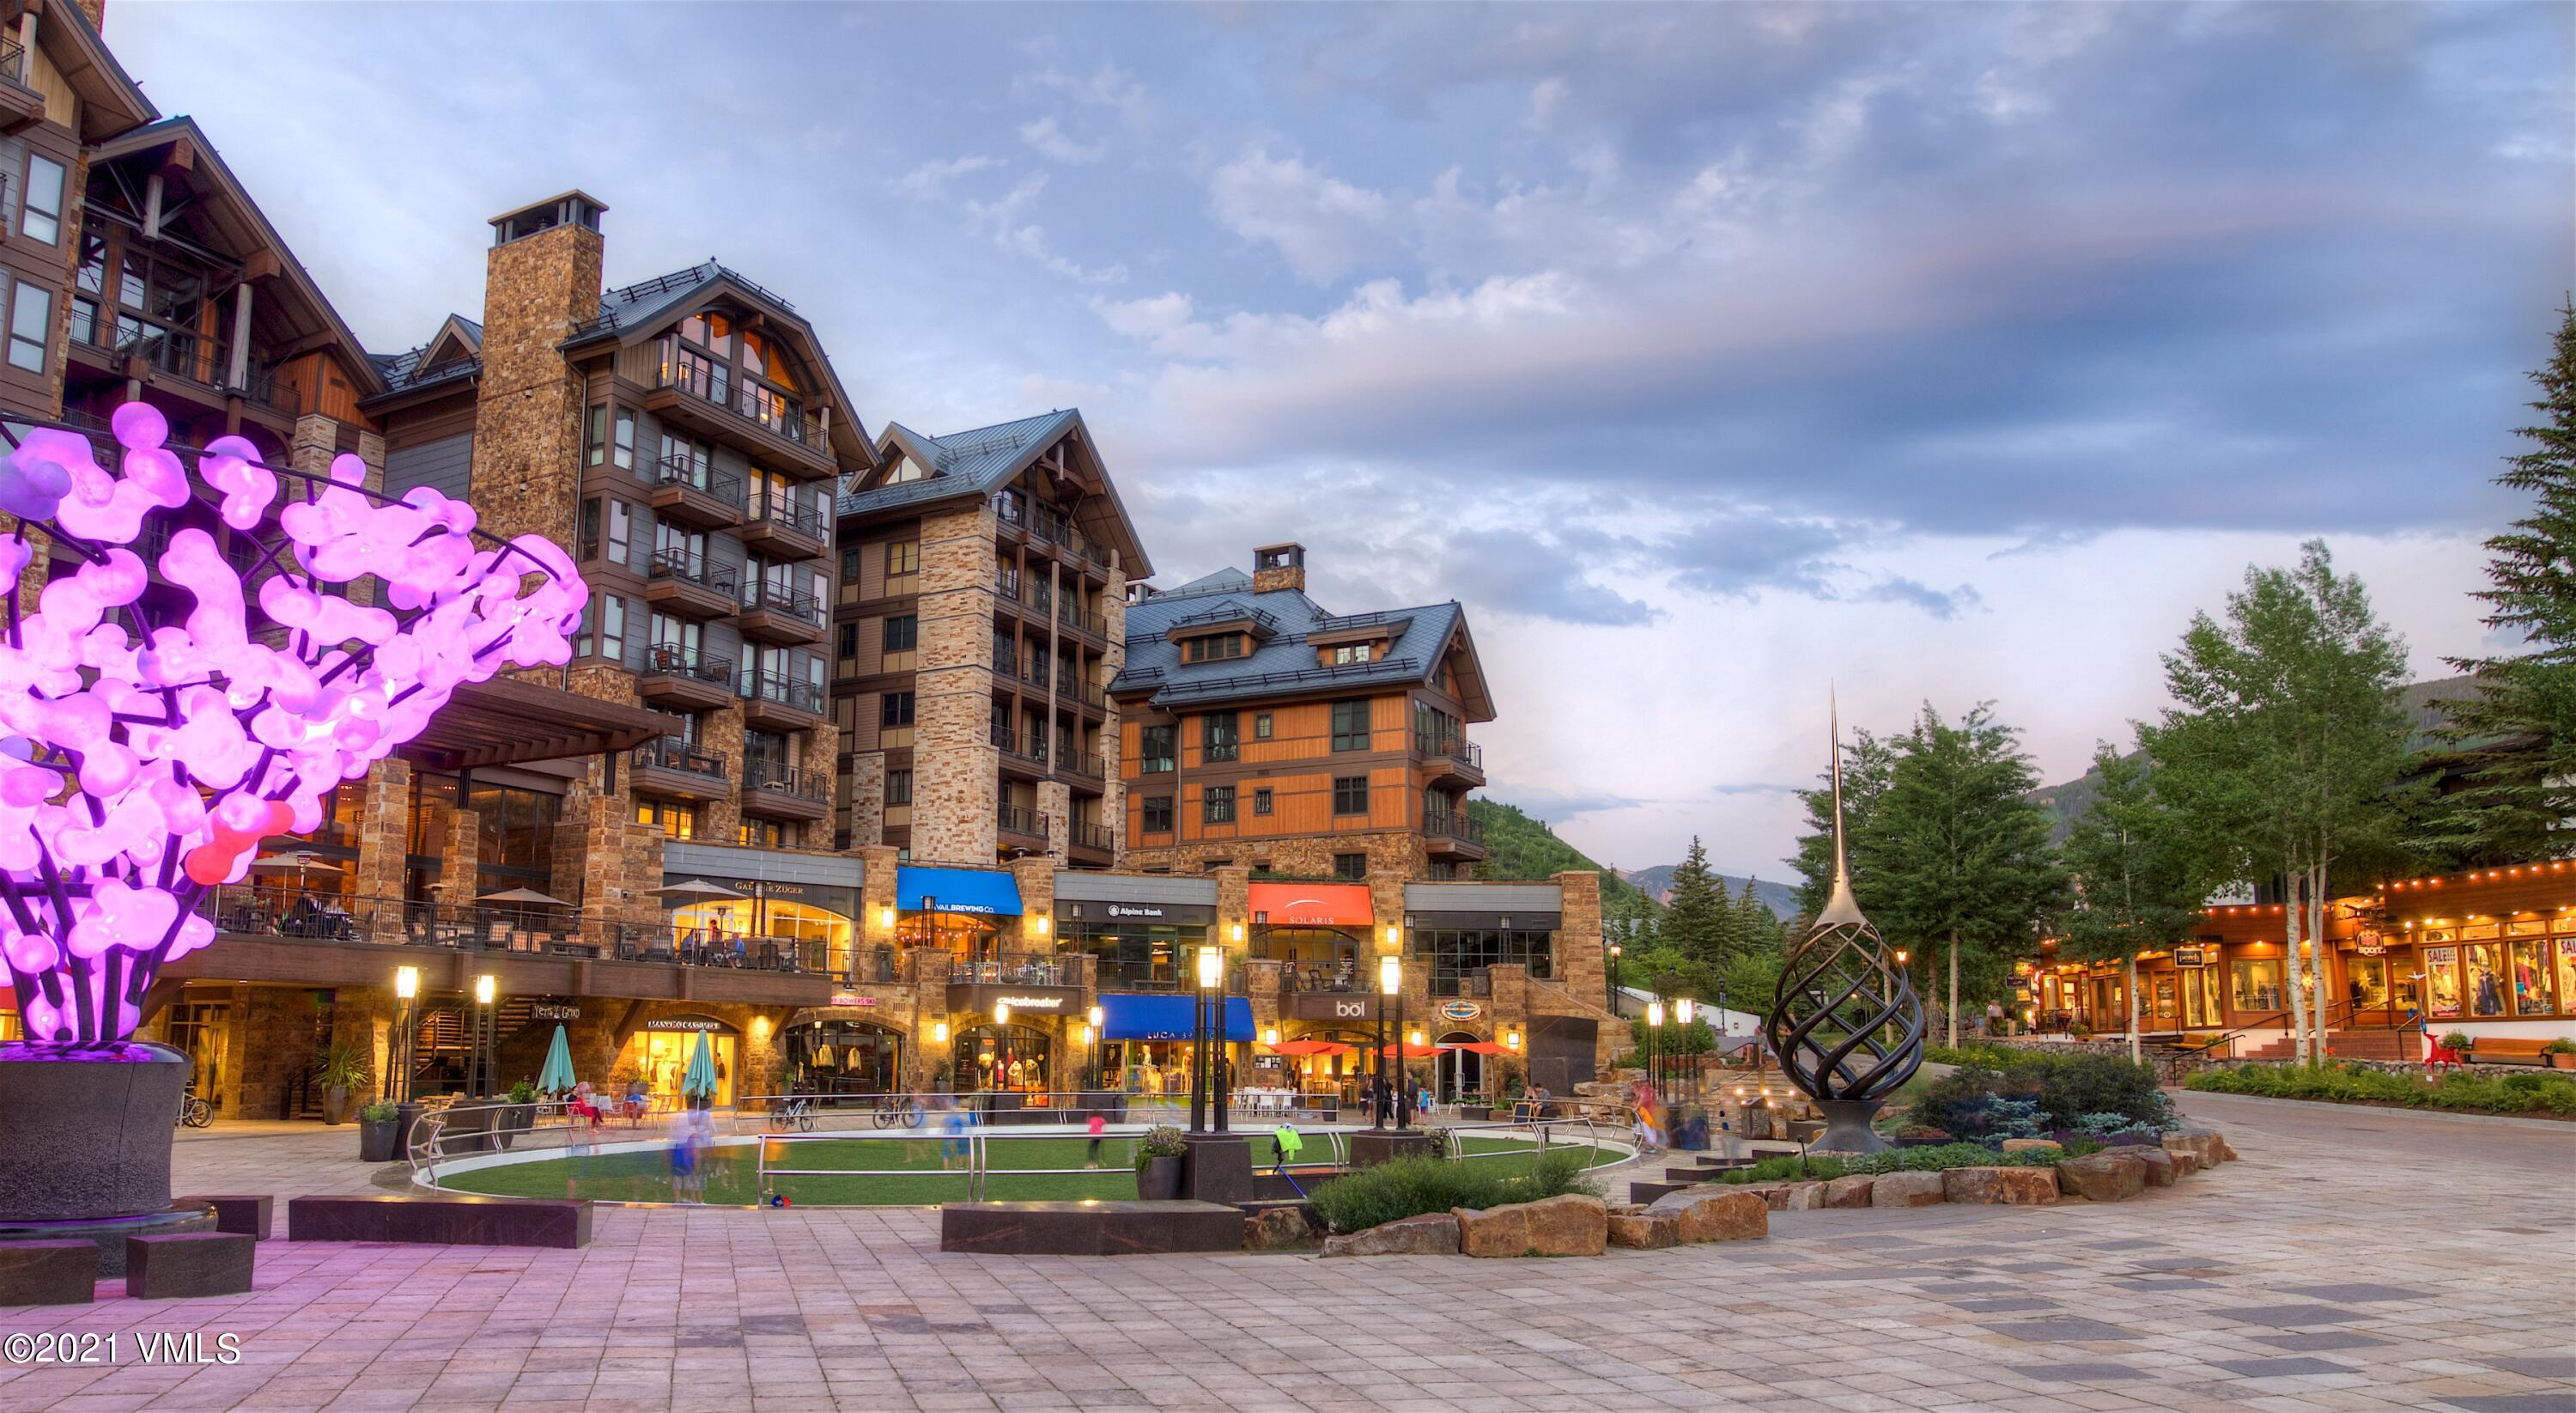 Large 4 Bedroom + den unit available at the Solaris Residences with beautiful mountain views making it the perfect fit for a family. As part of the premier building in Vail owners get access to five star services and amenities, lockers at the ski lift and high end quality finishes.